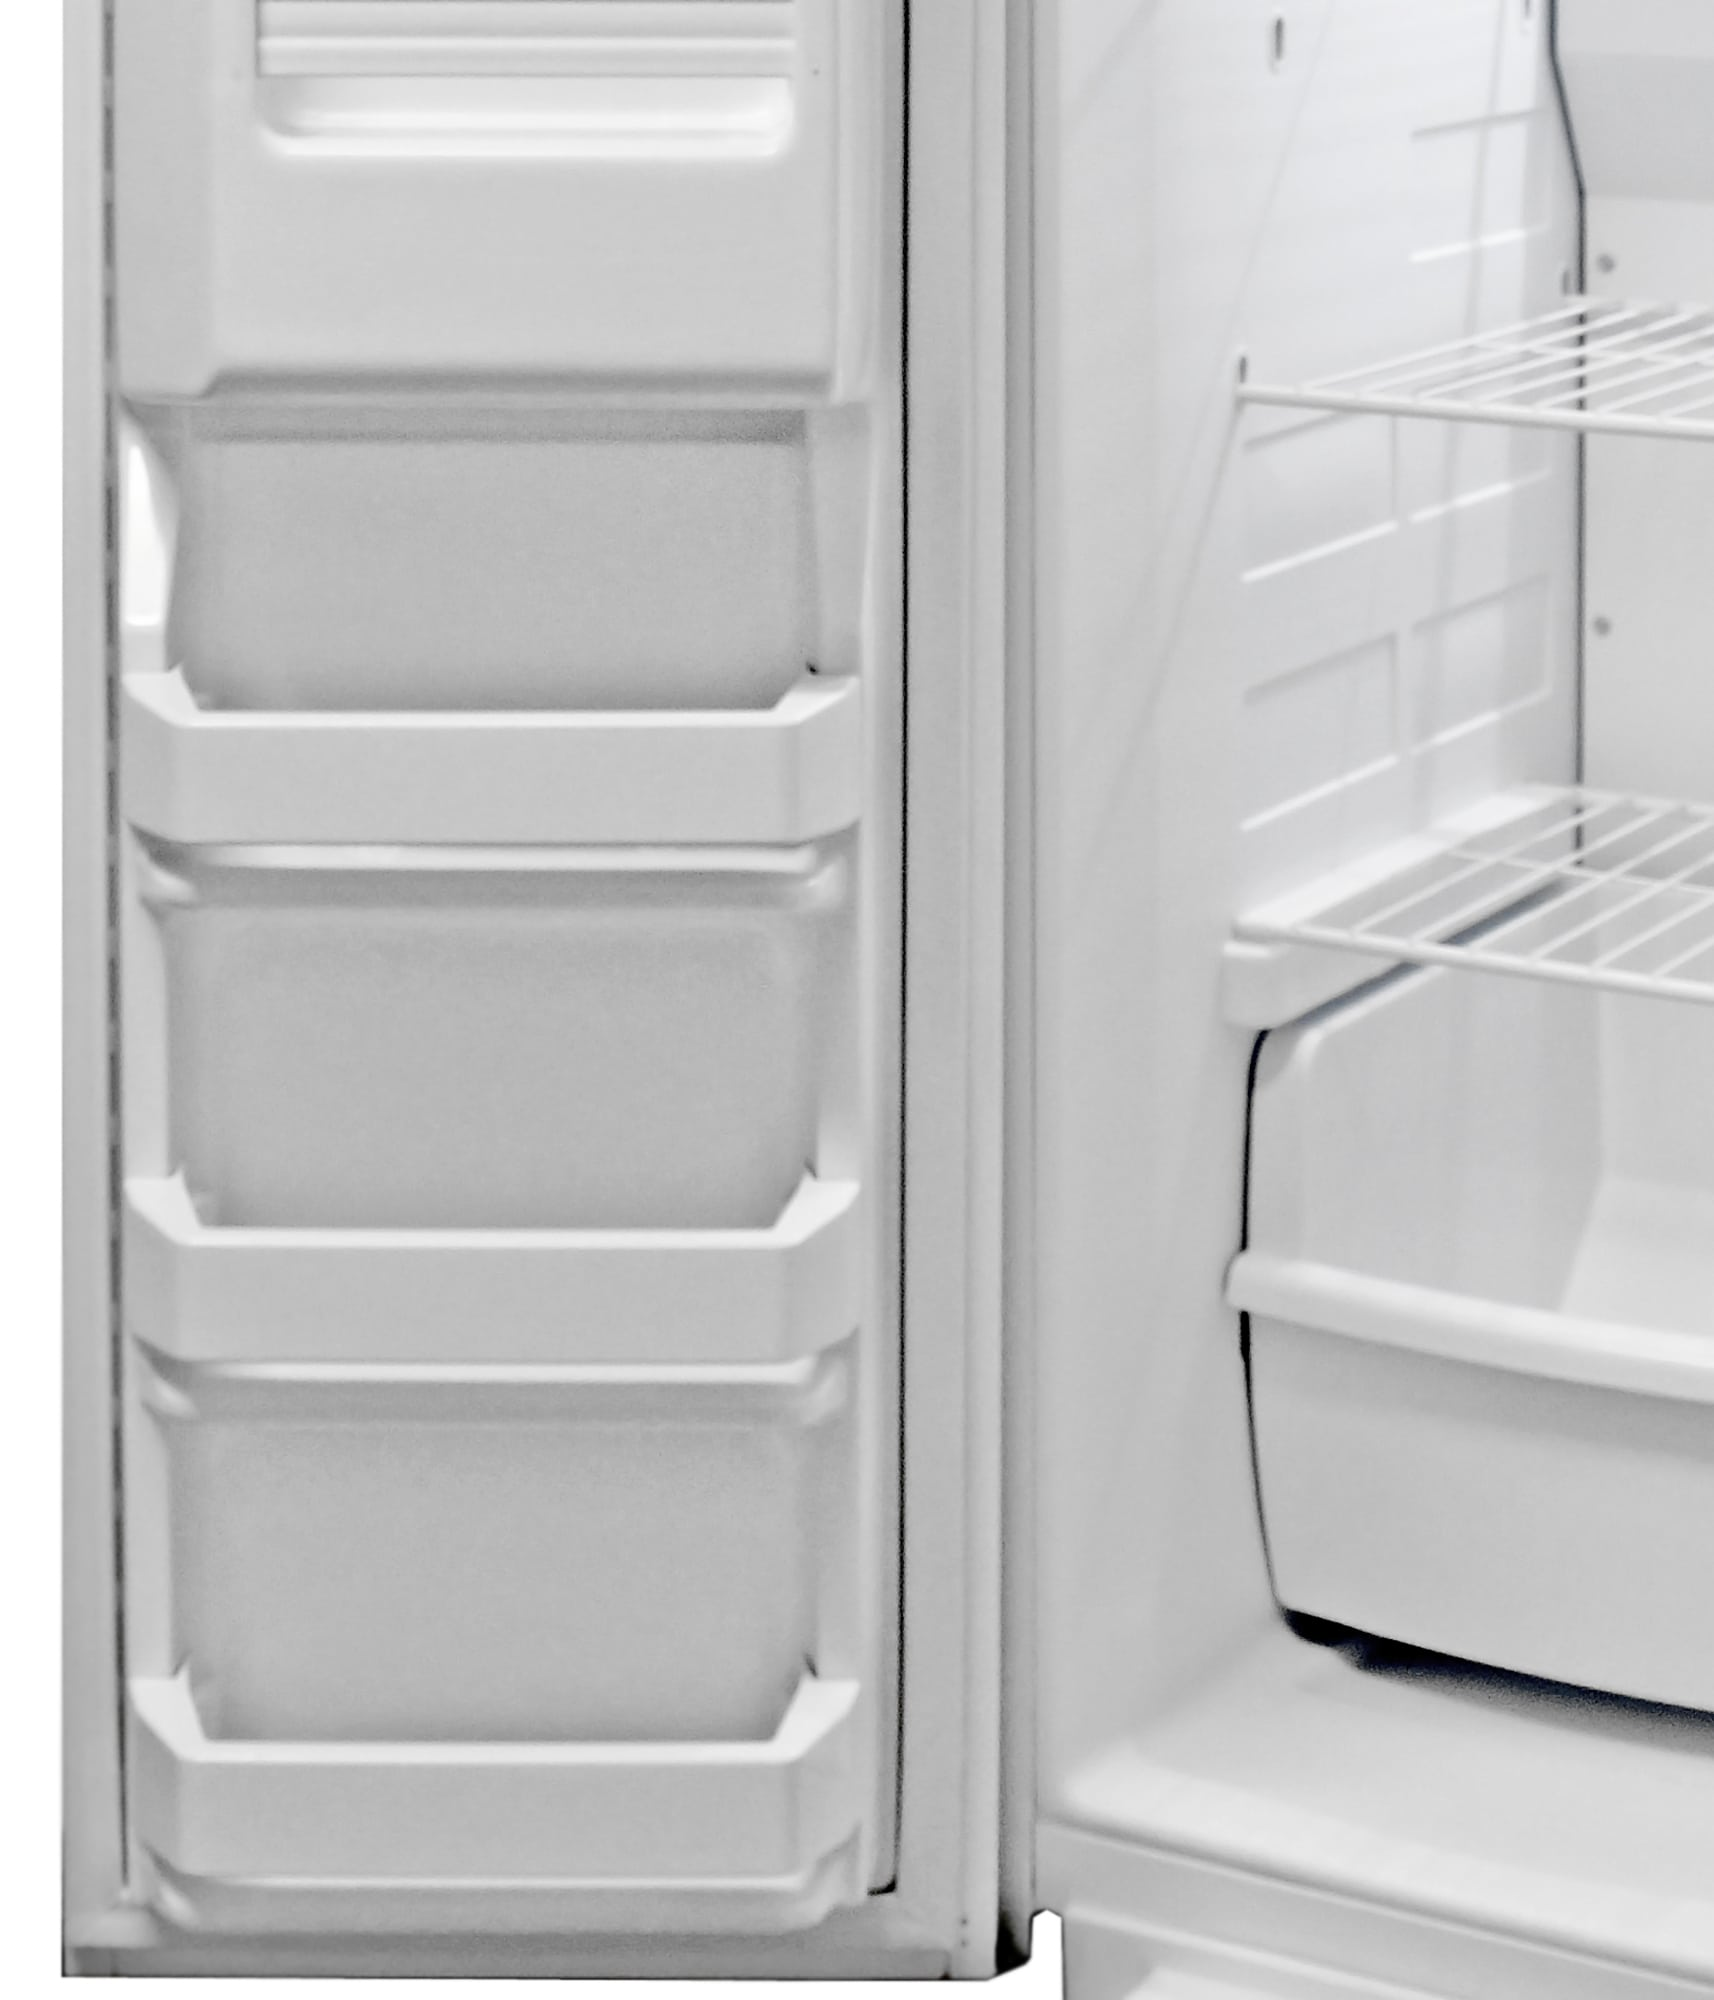 The Kenmore 51122's freezer door has three shallow shelves at the bottom.